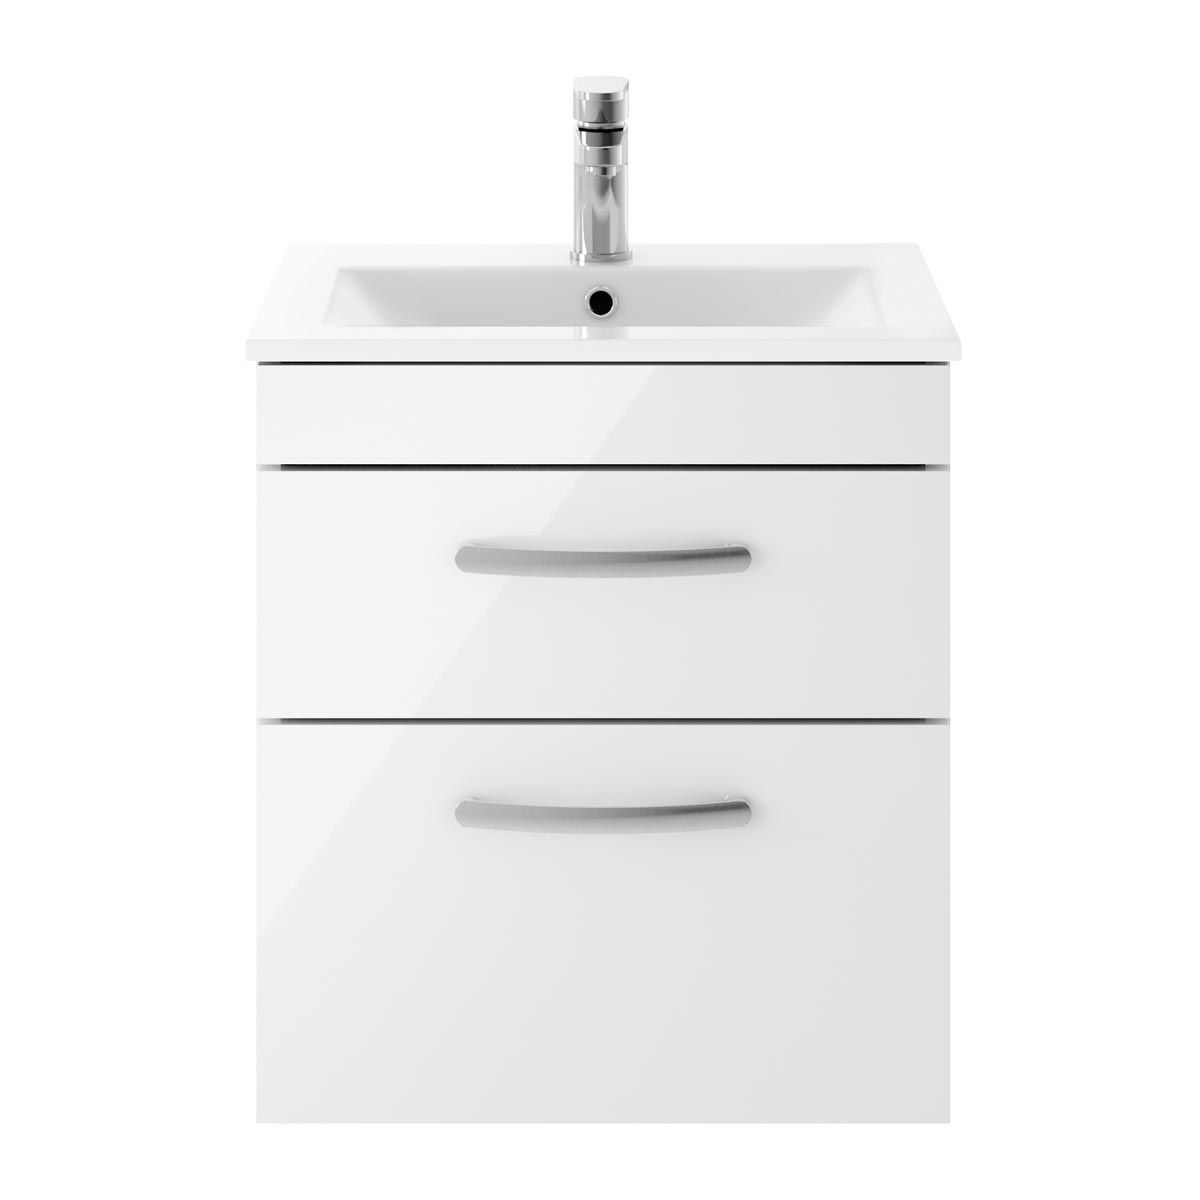 Nuie Athena Gloss White 2 Drawer Wall Hung Vanity Unit with 18mm Profile Basin 500mm